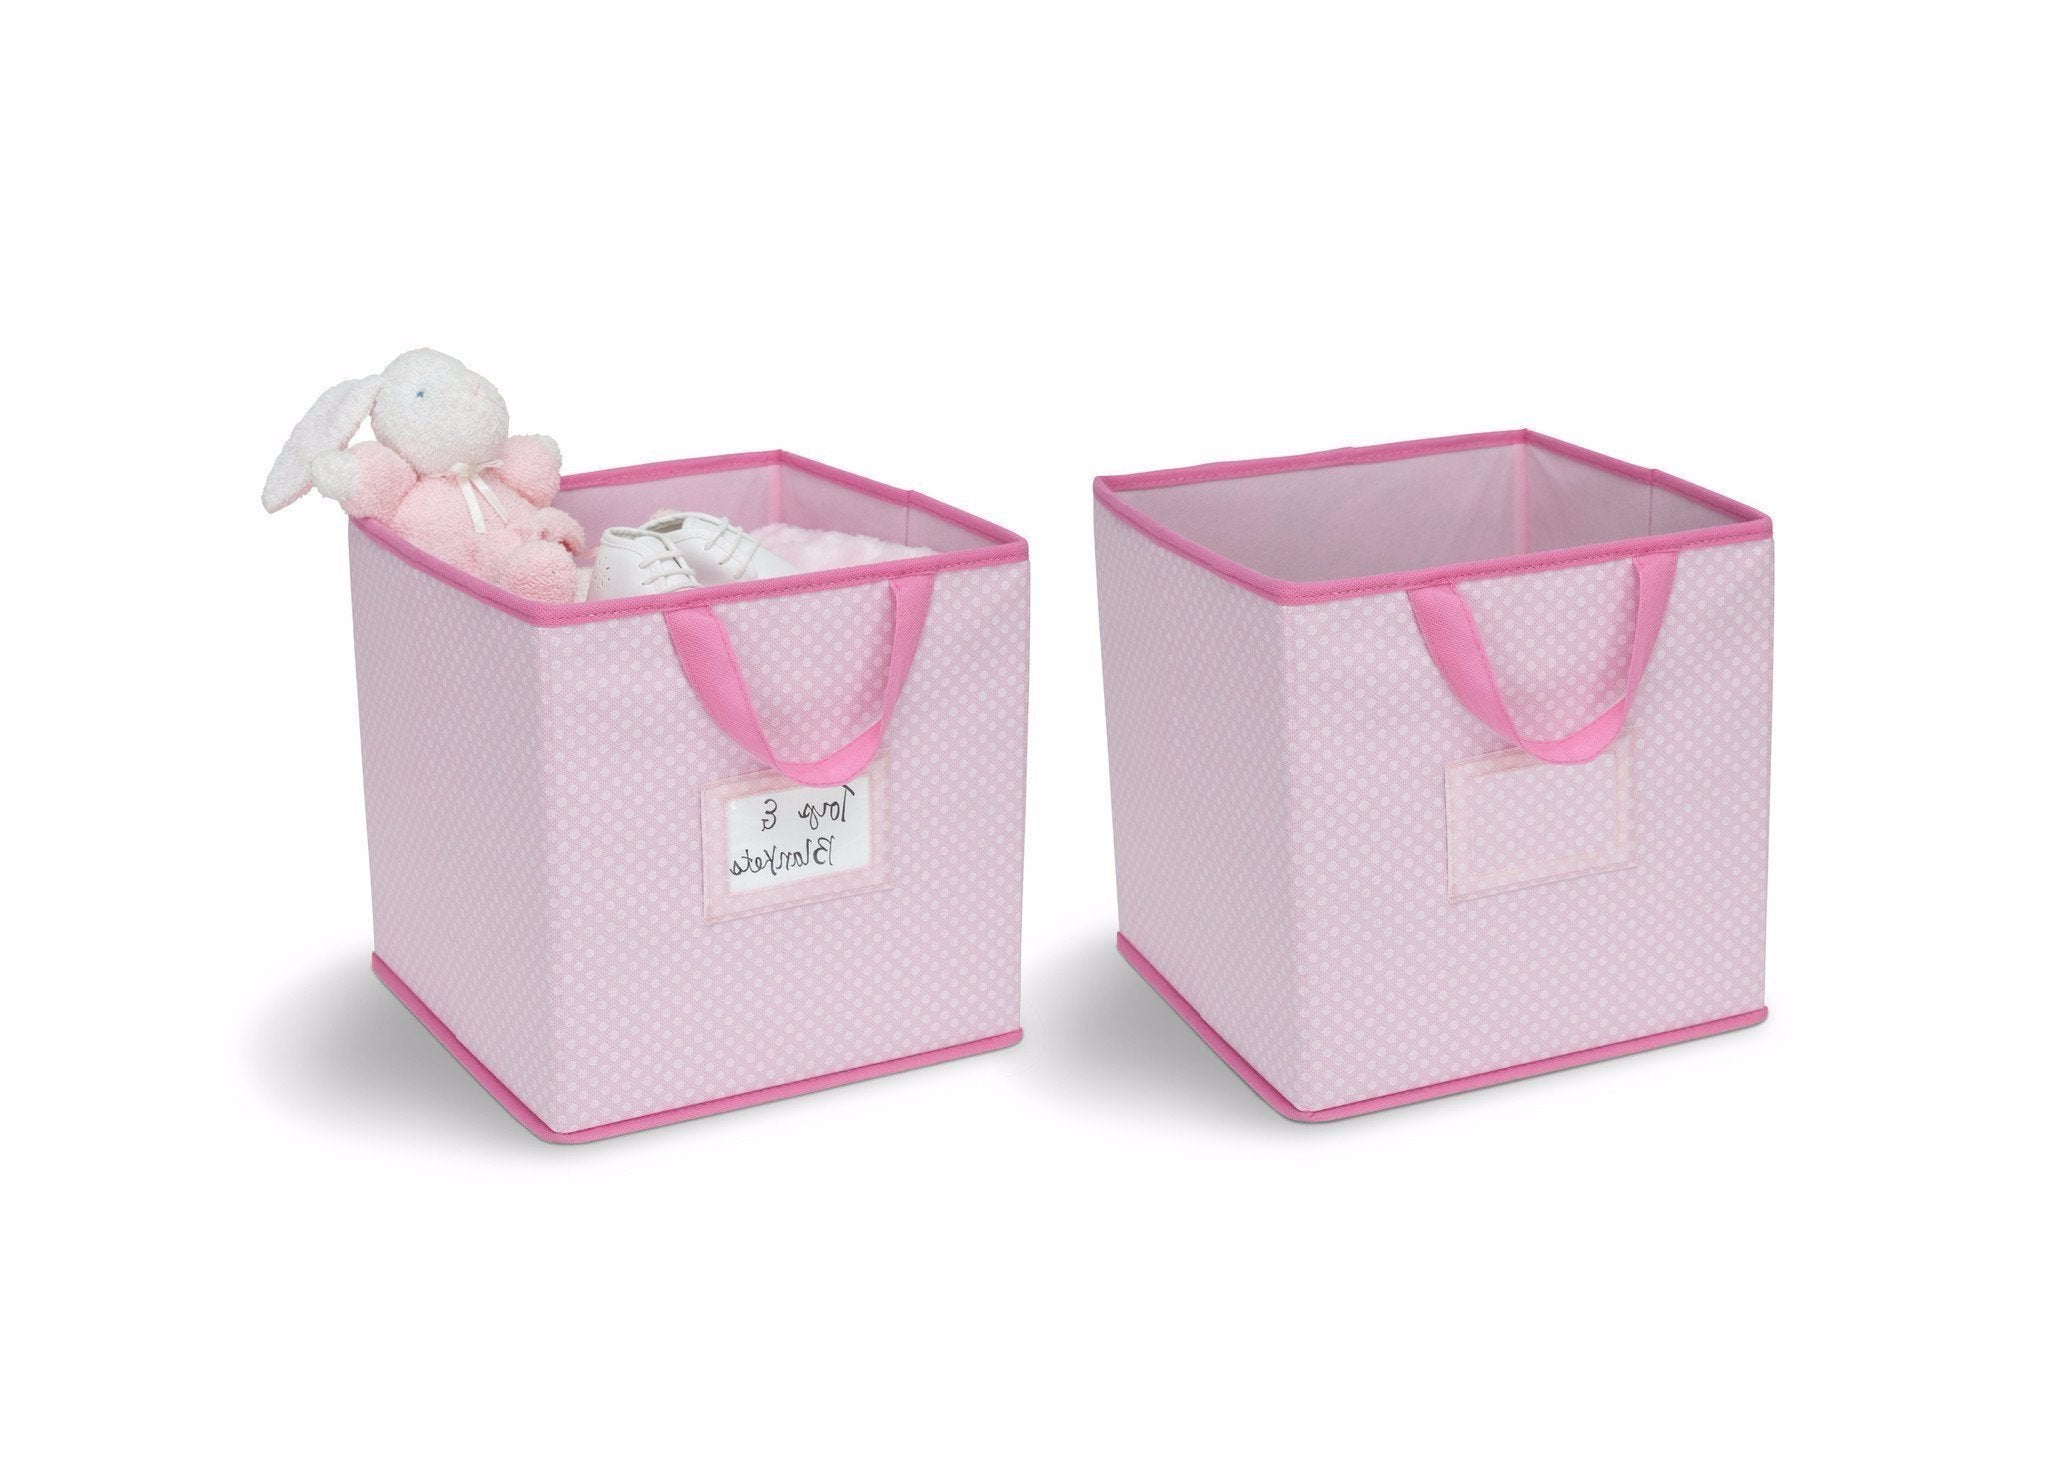 Delta Children Barely Pink (689) 2-Piece Storage Cube Set (SS2155) with props, f2f